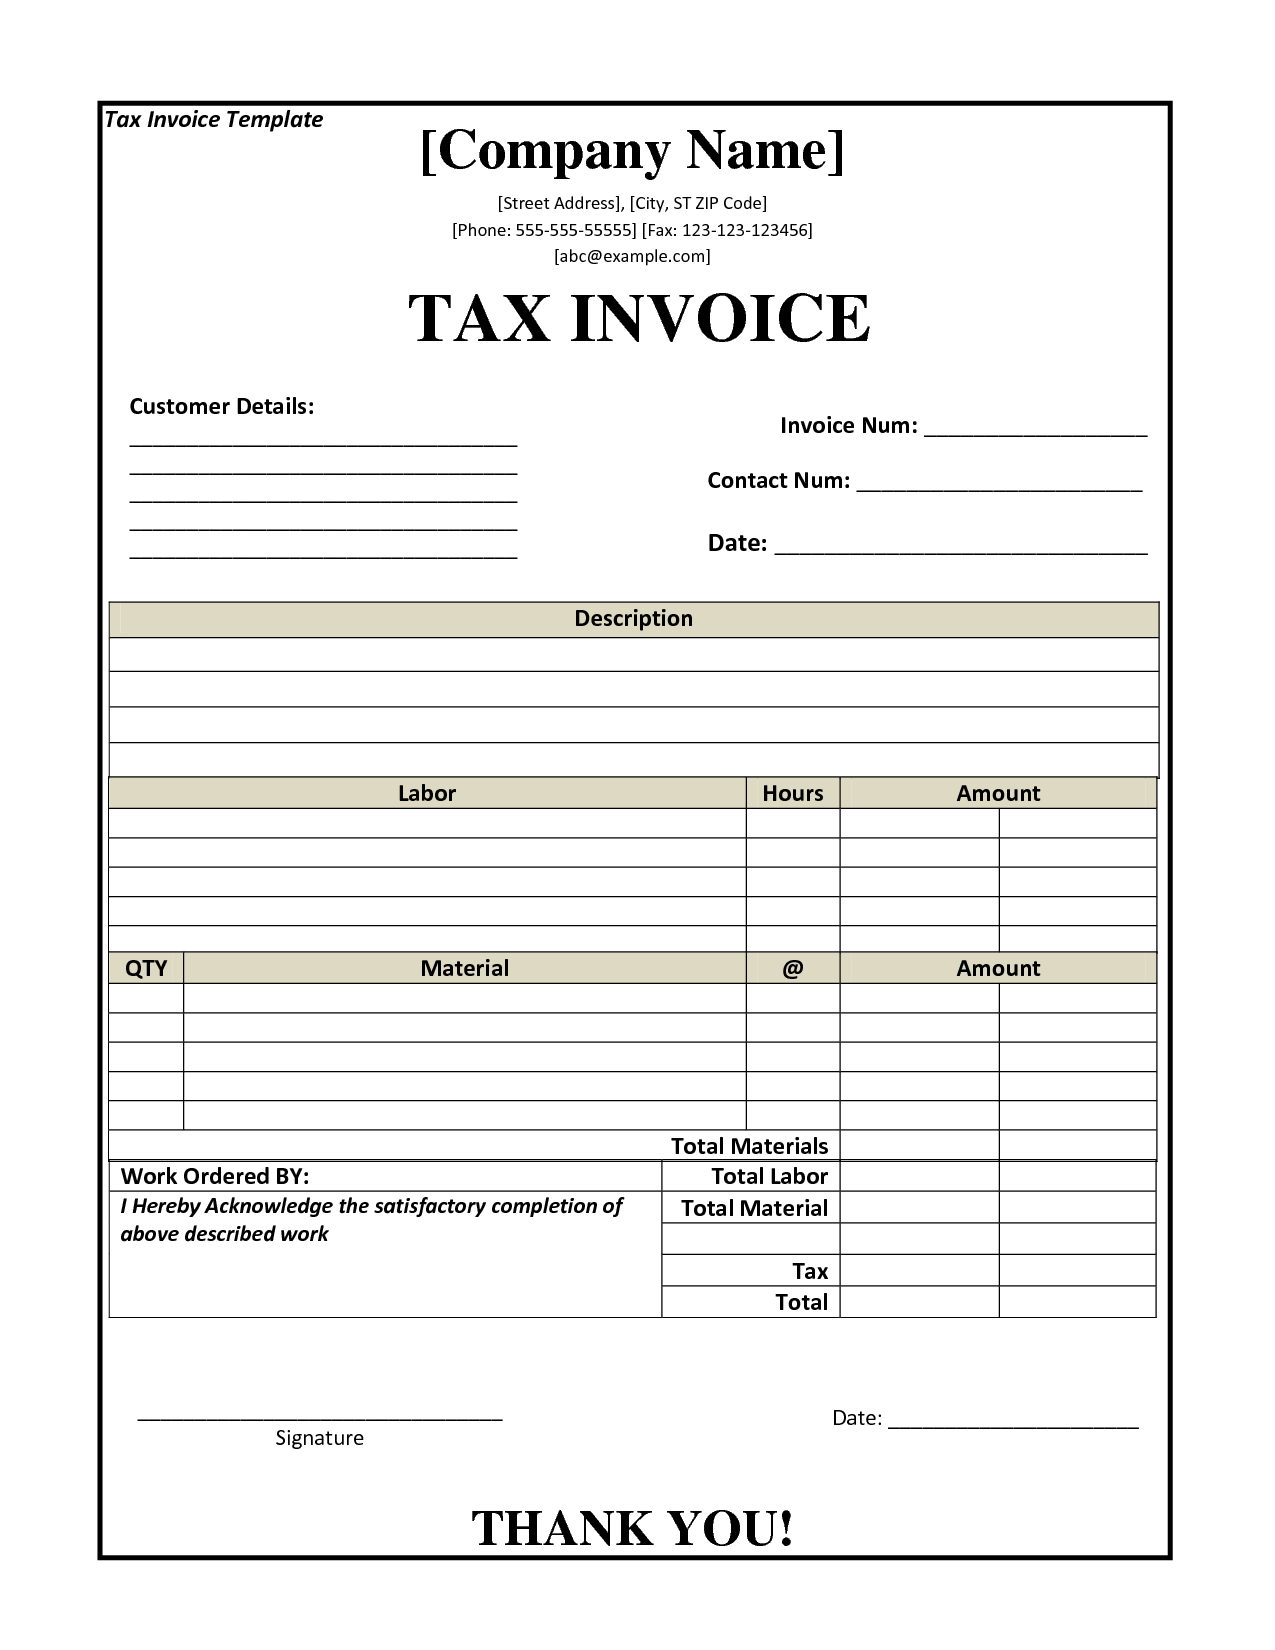 example of tax invoice – notators, Invoice examples